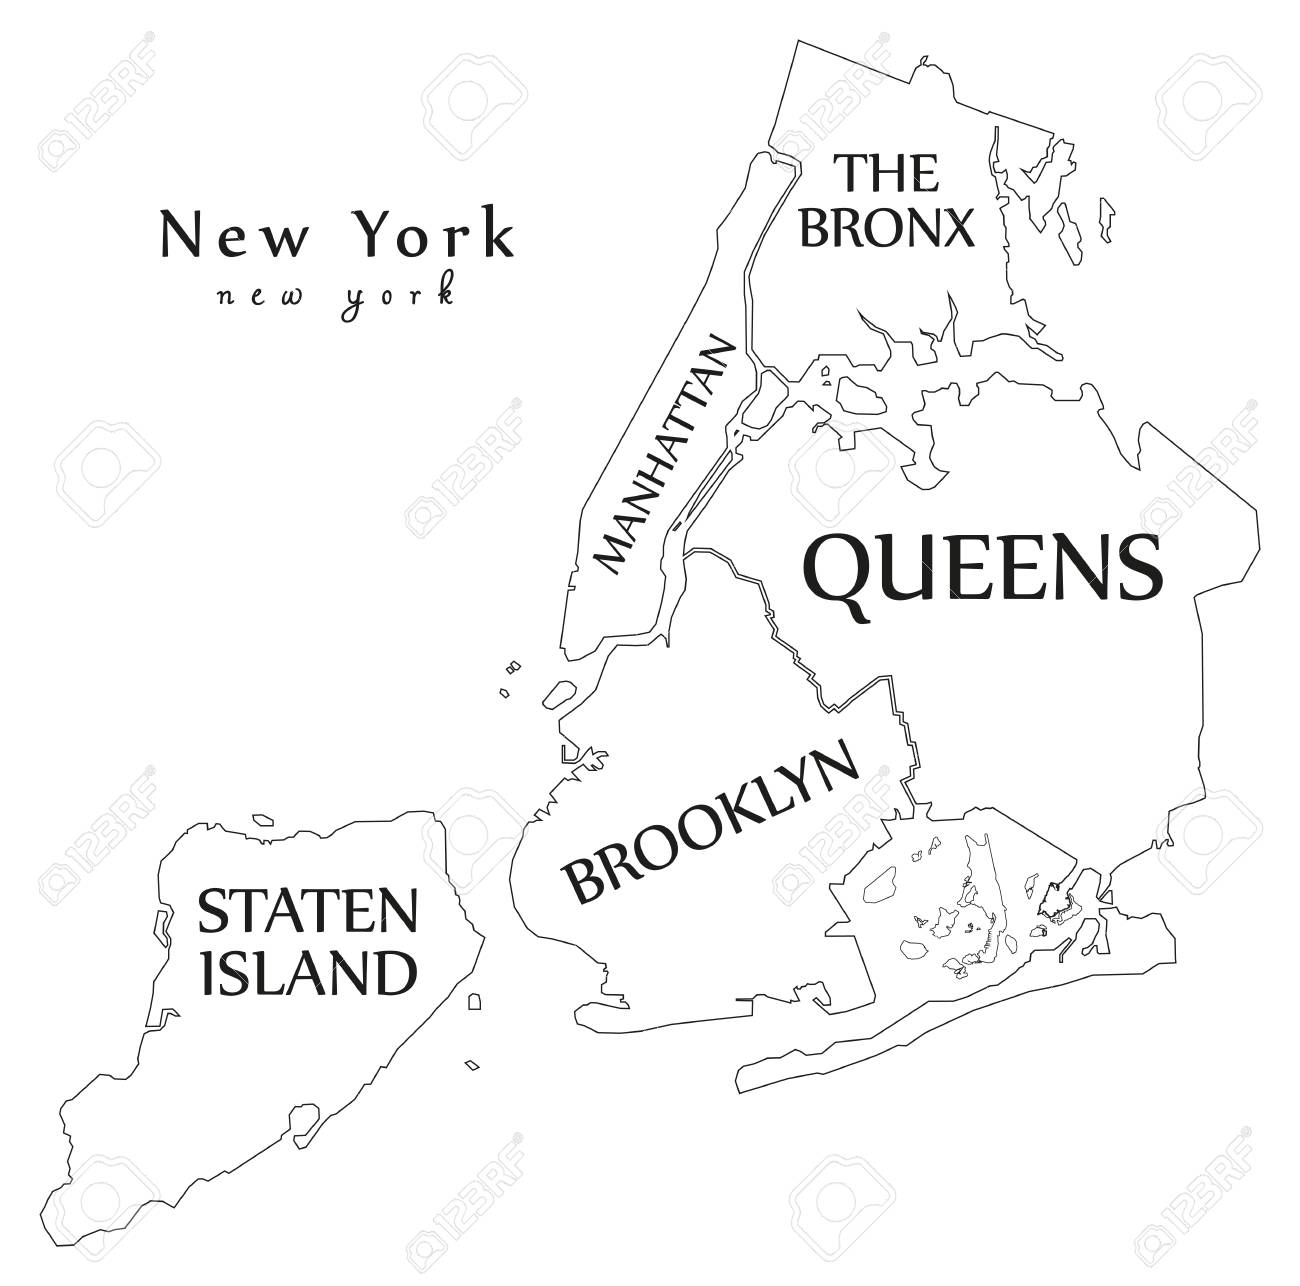 Free Printable Map Of New York City.Modern City Map New York City Of The Usa With Boroughs And